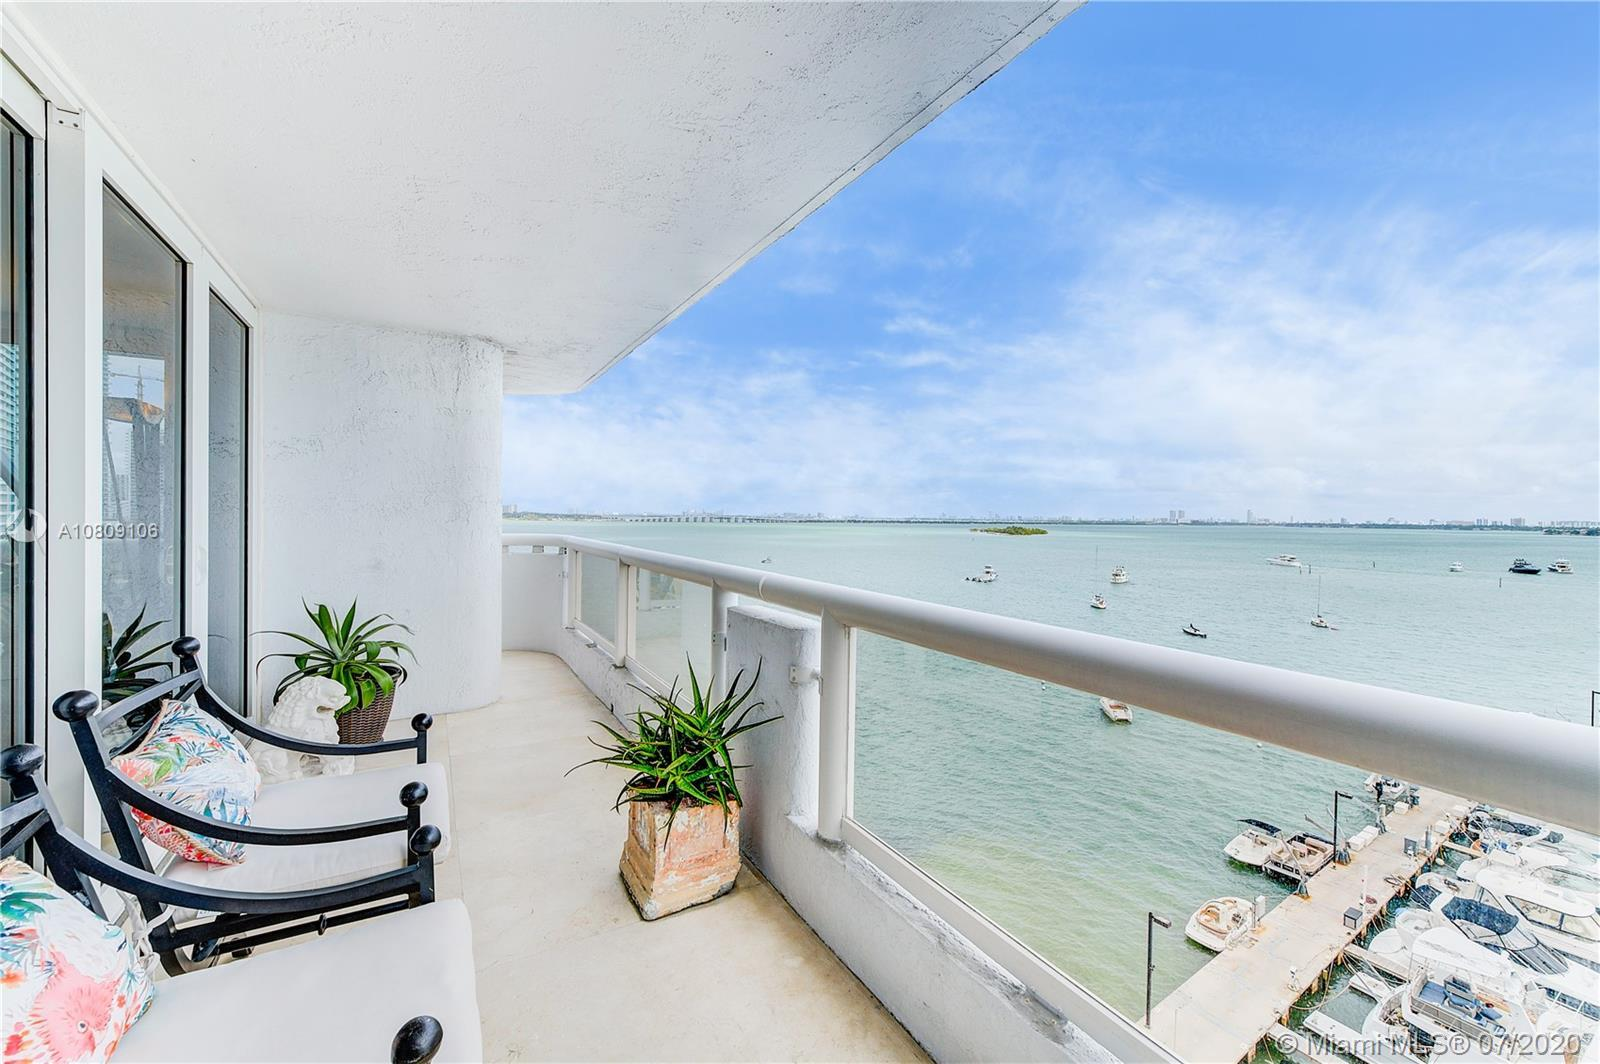 Want to feel as though you are swept away in dynamic water views?   With this impeccably renovated c